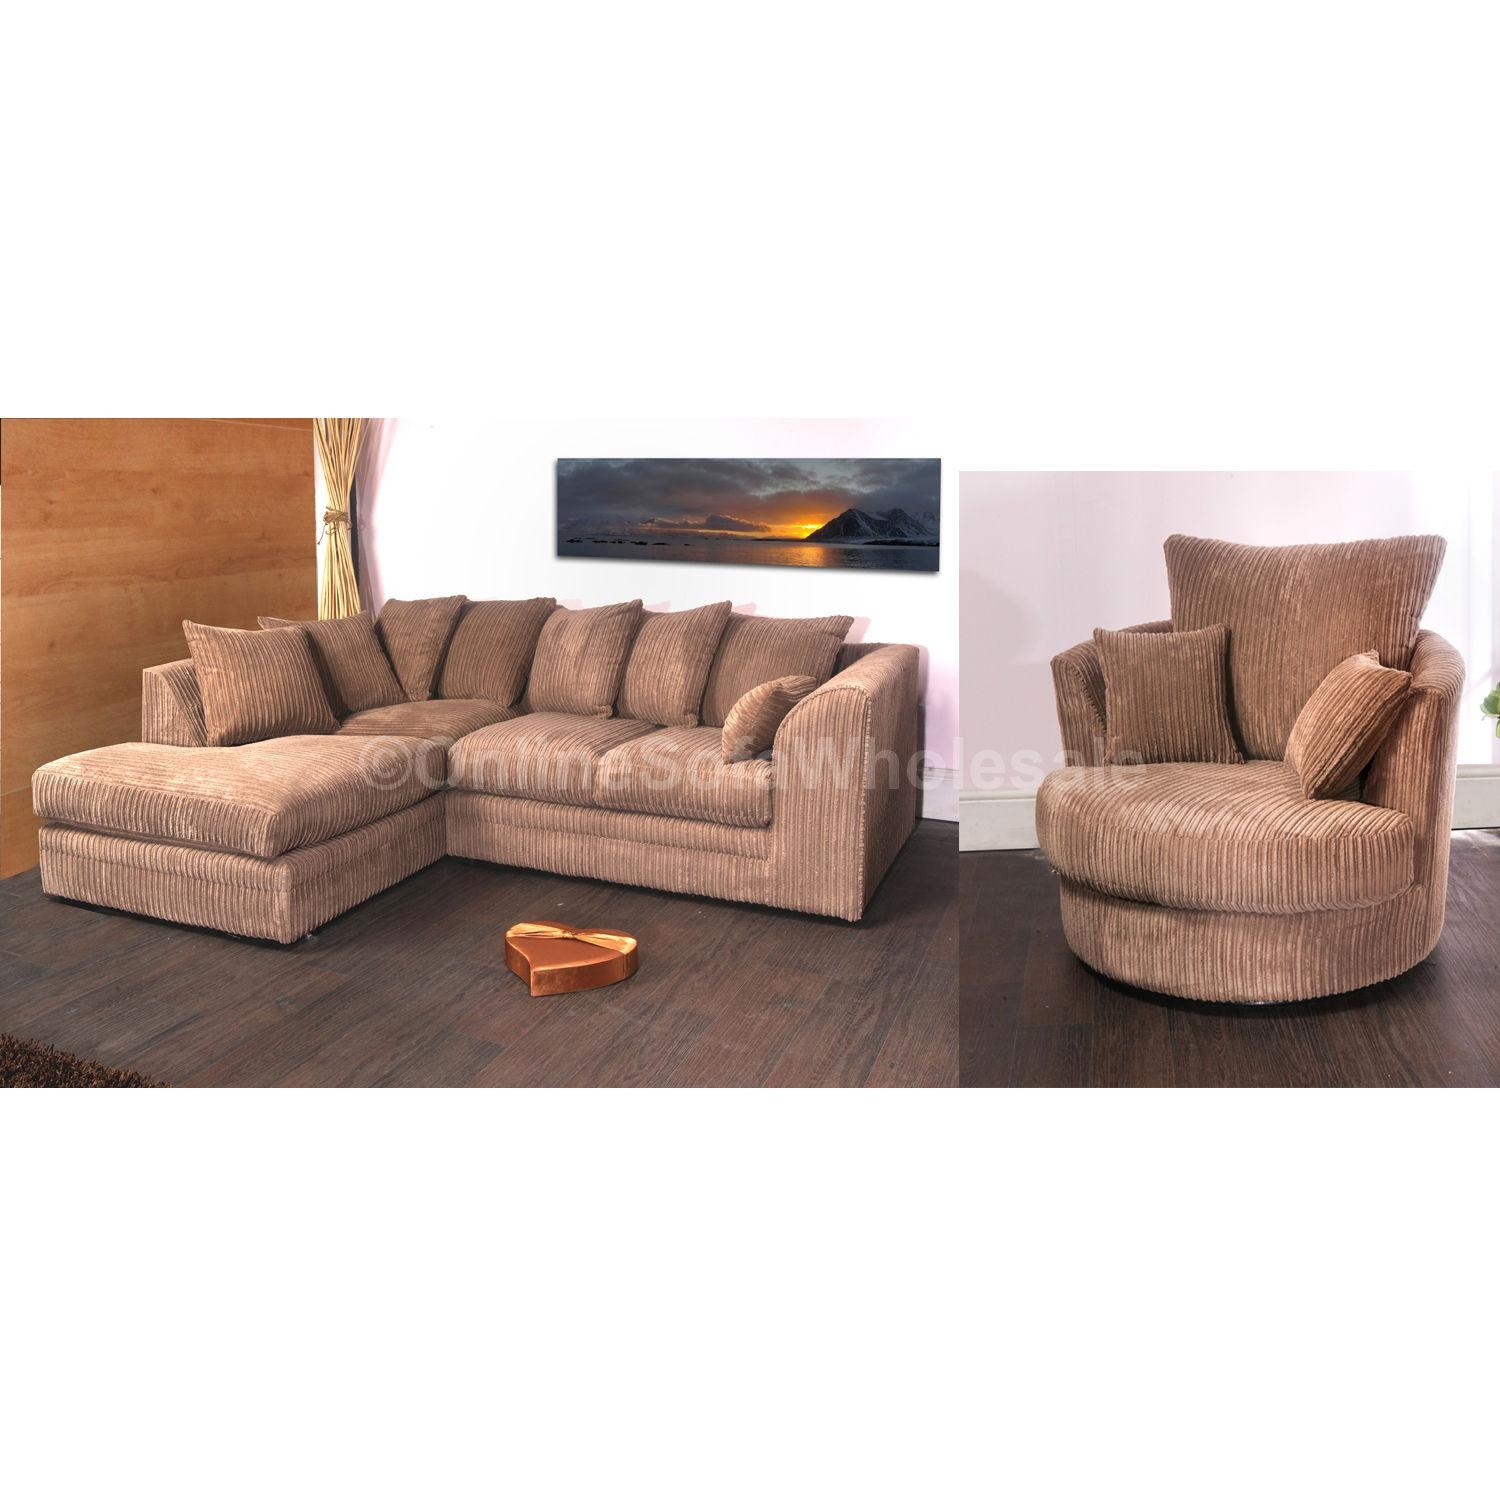 Cord Corner Sofa And Swivel Chair | Get Furnitures For Home Within Corner Sofa And Swivel Chairs (Image 5 of 20)